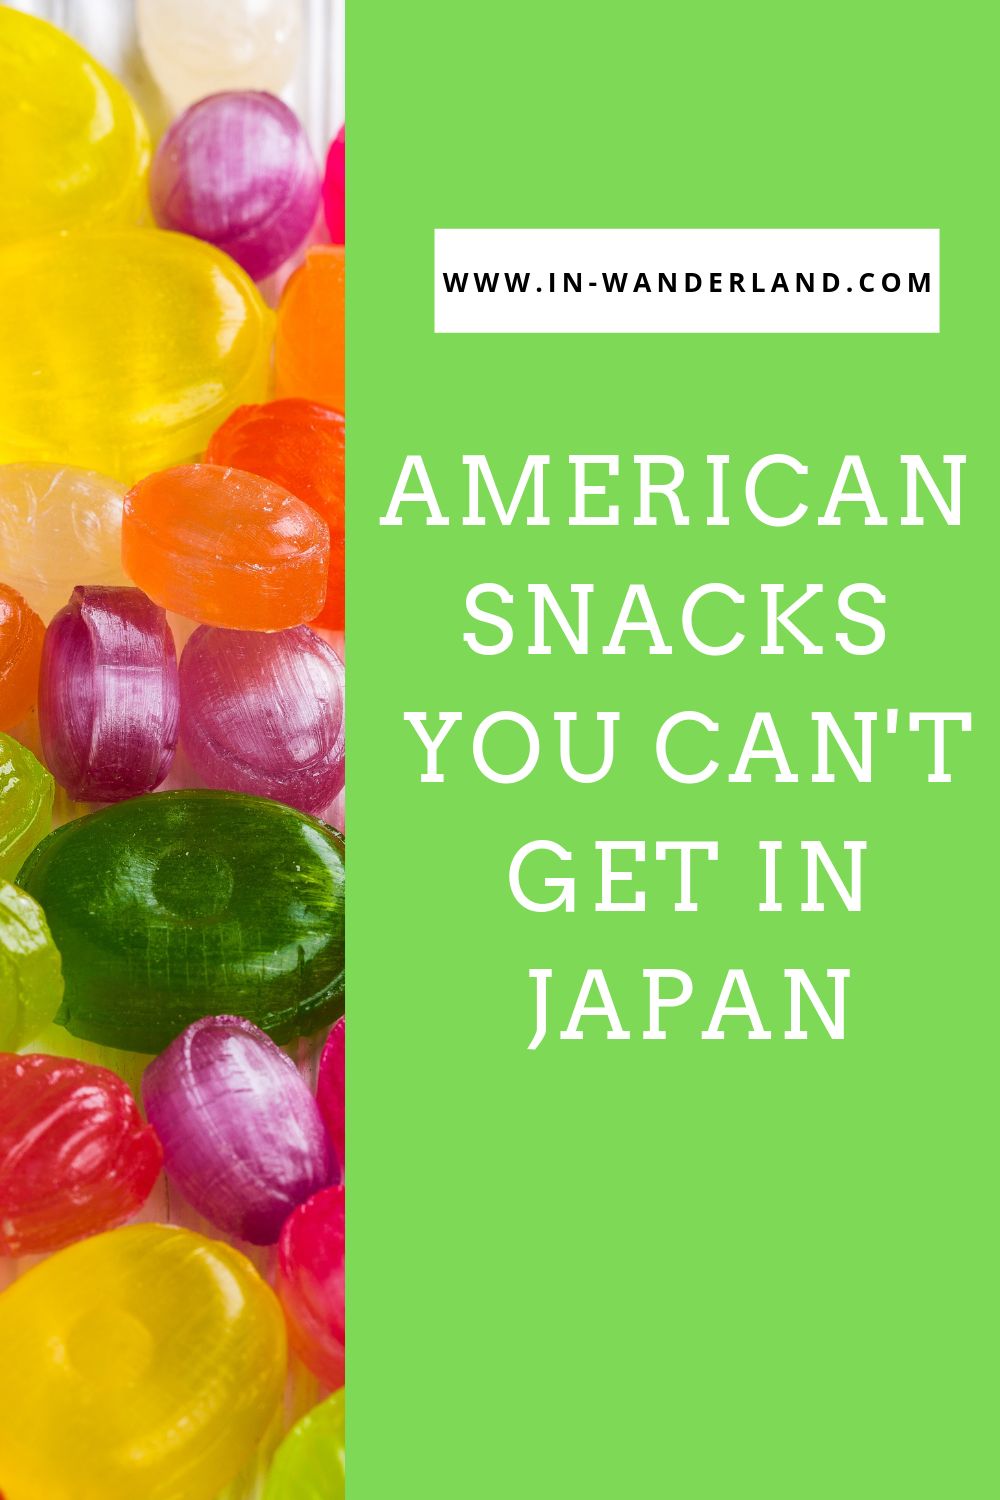 American Snacks You Can and Can't Get in Japan